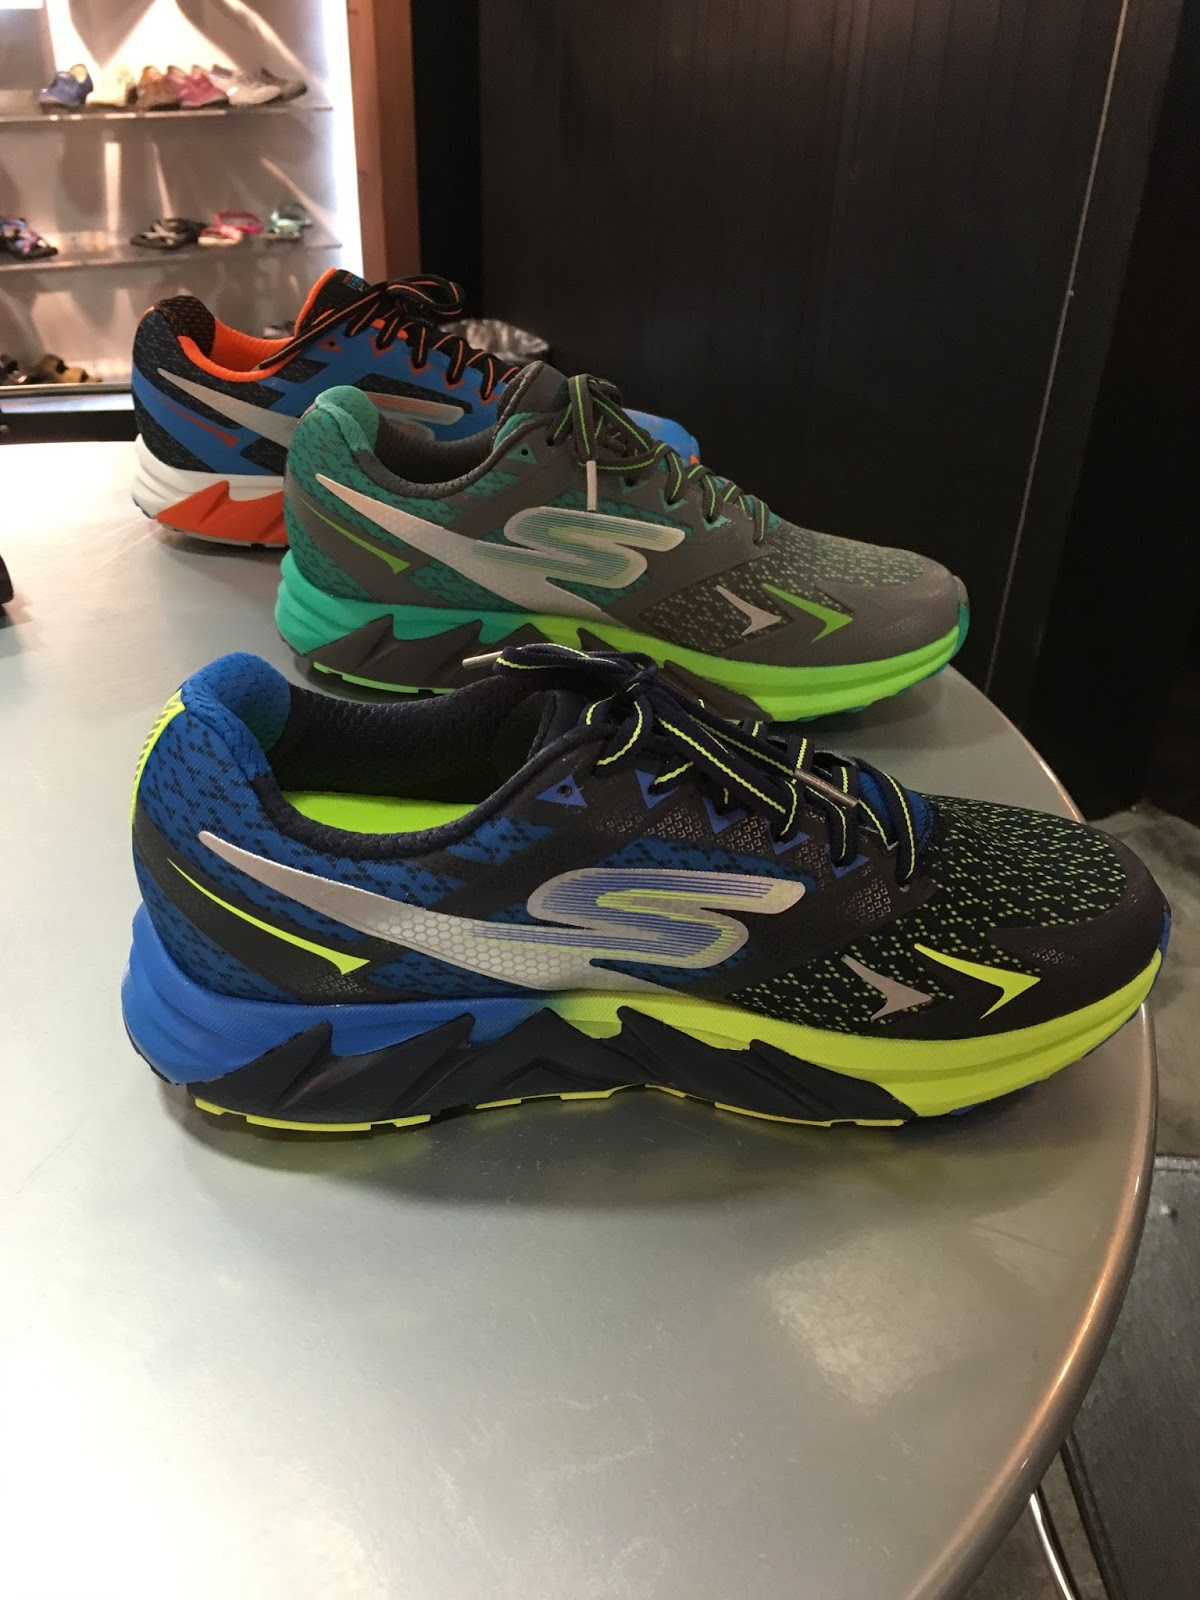 Running / Trail Skechers GO Run Forza Skechers IzGxLlWVX9